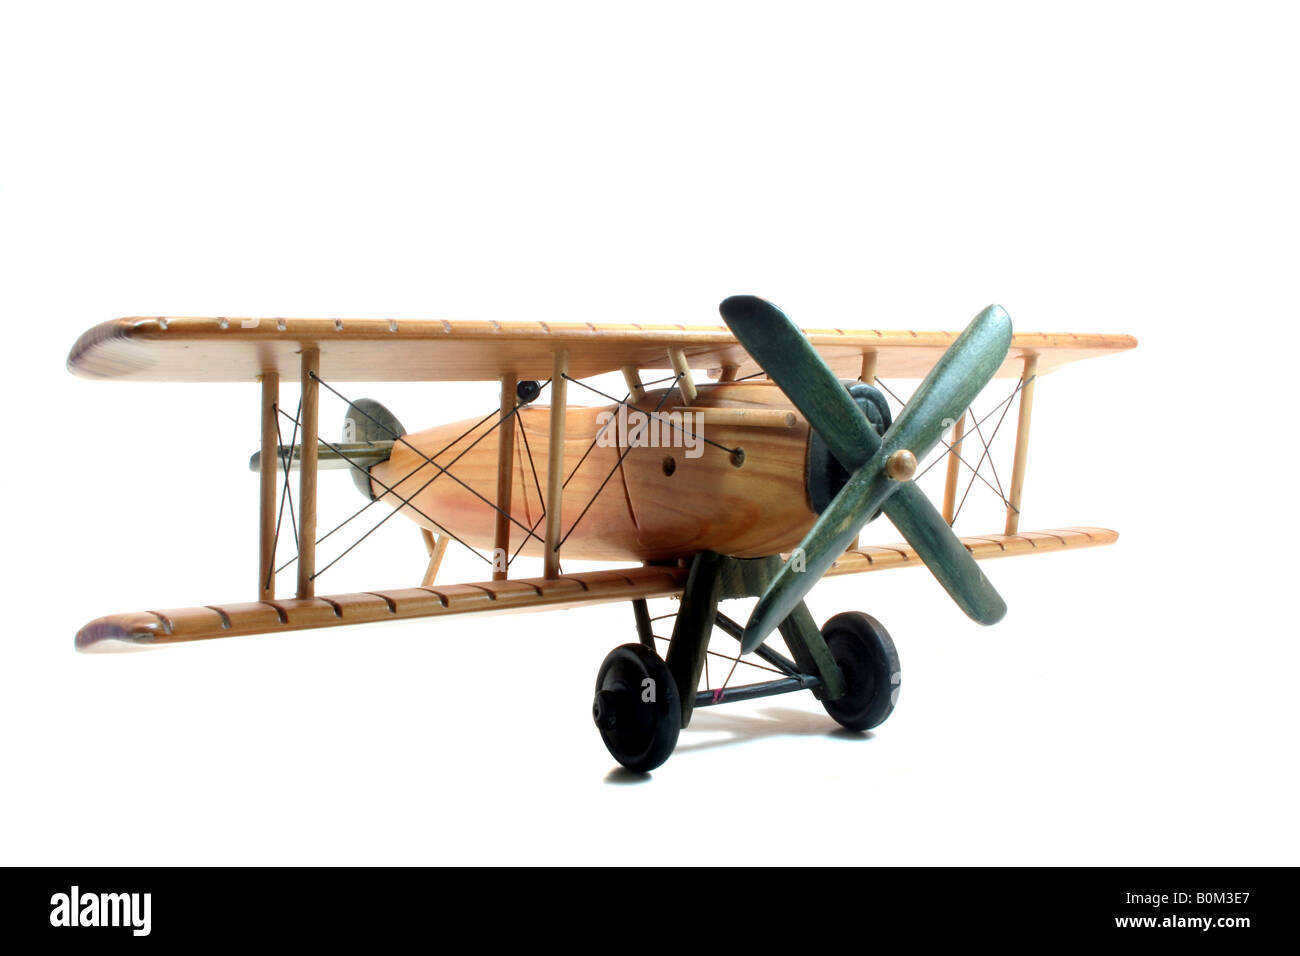 Wooden toy plane - Stock Image